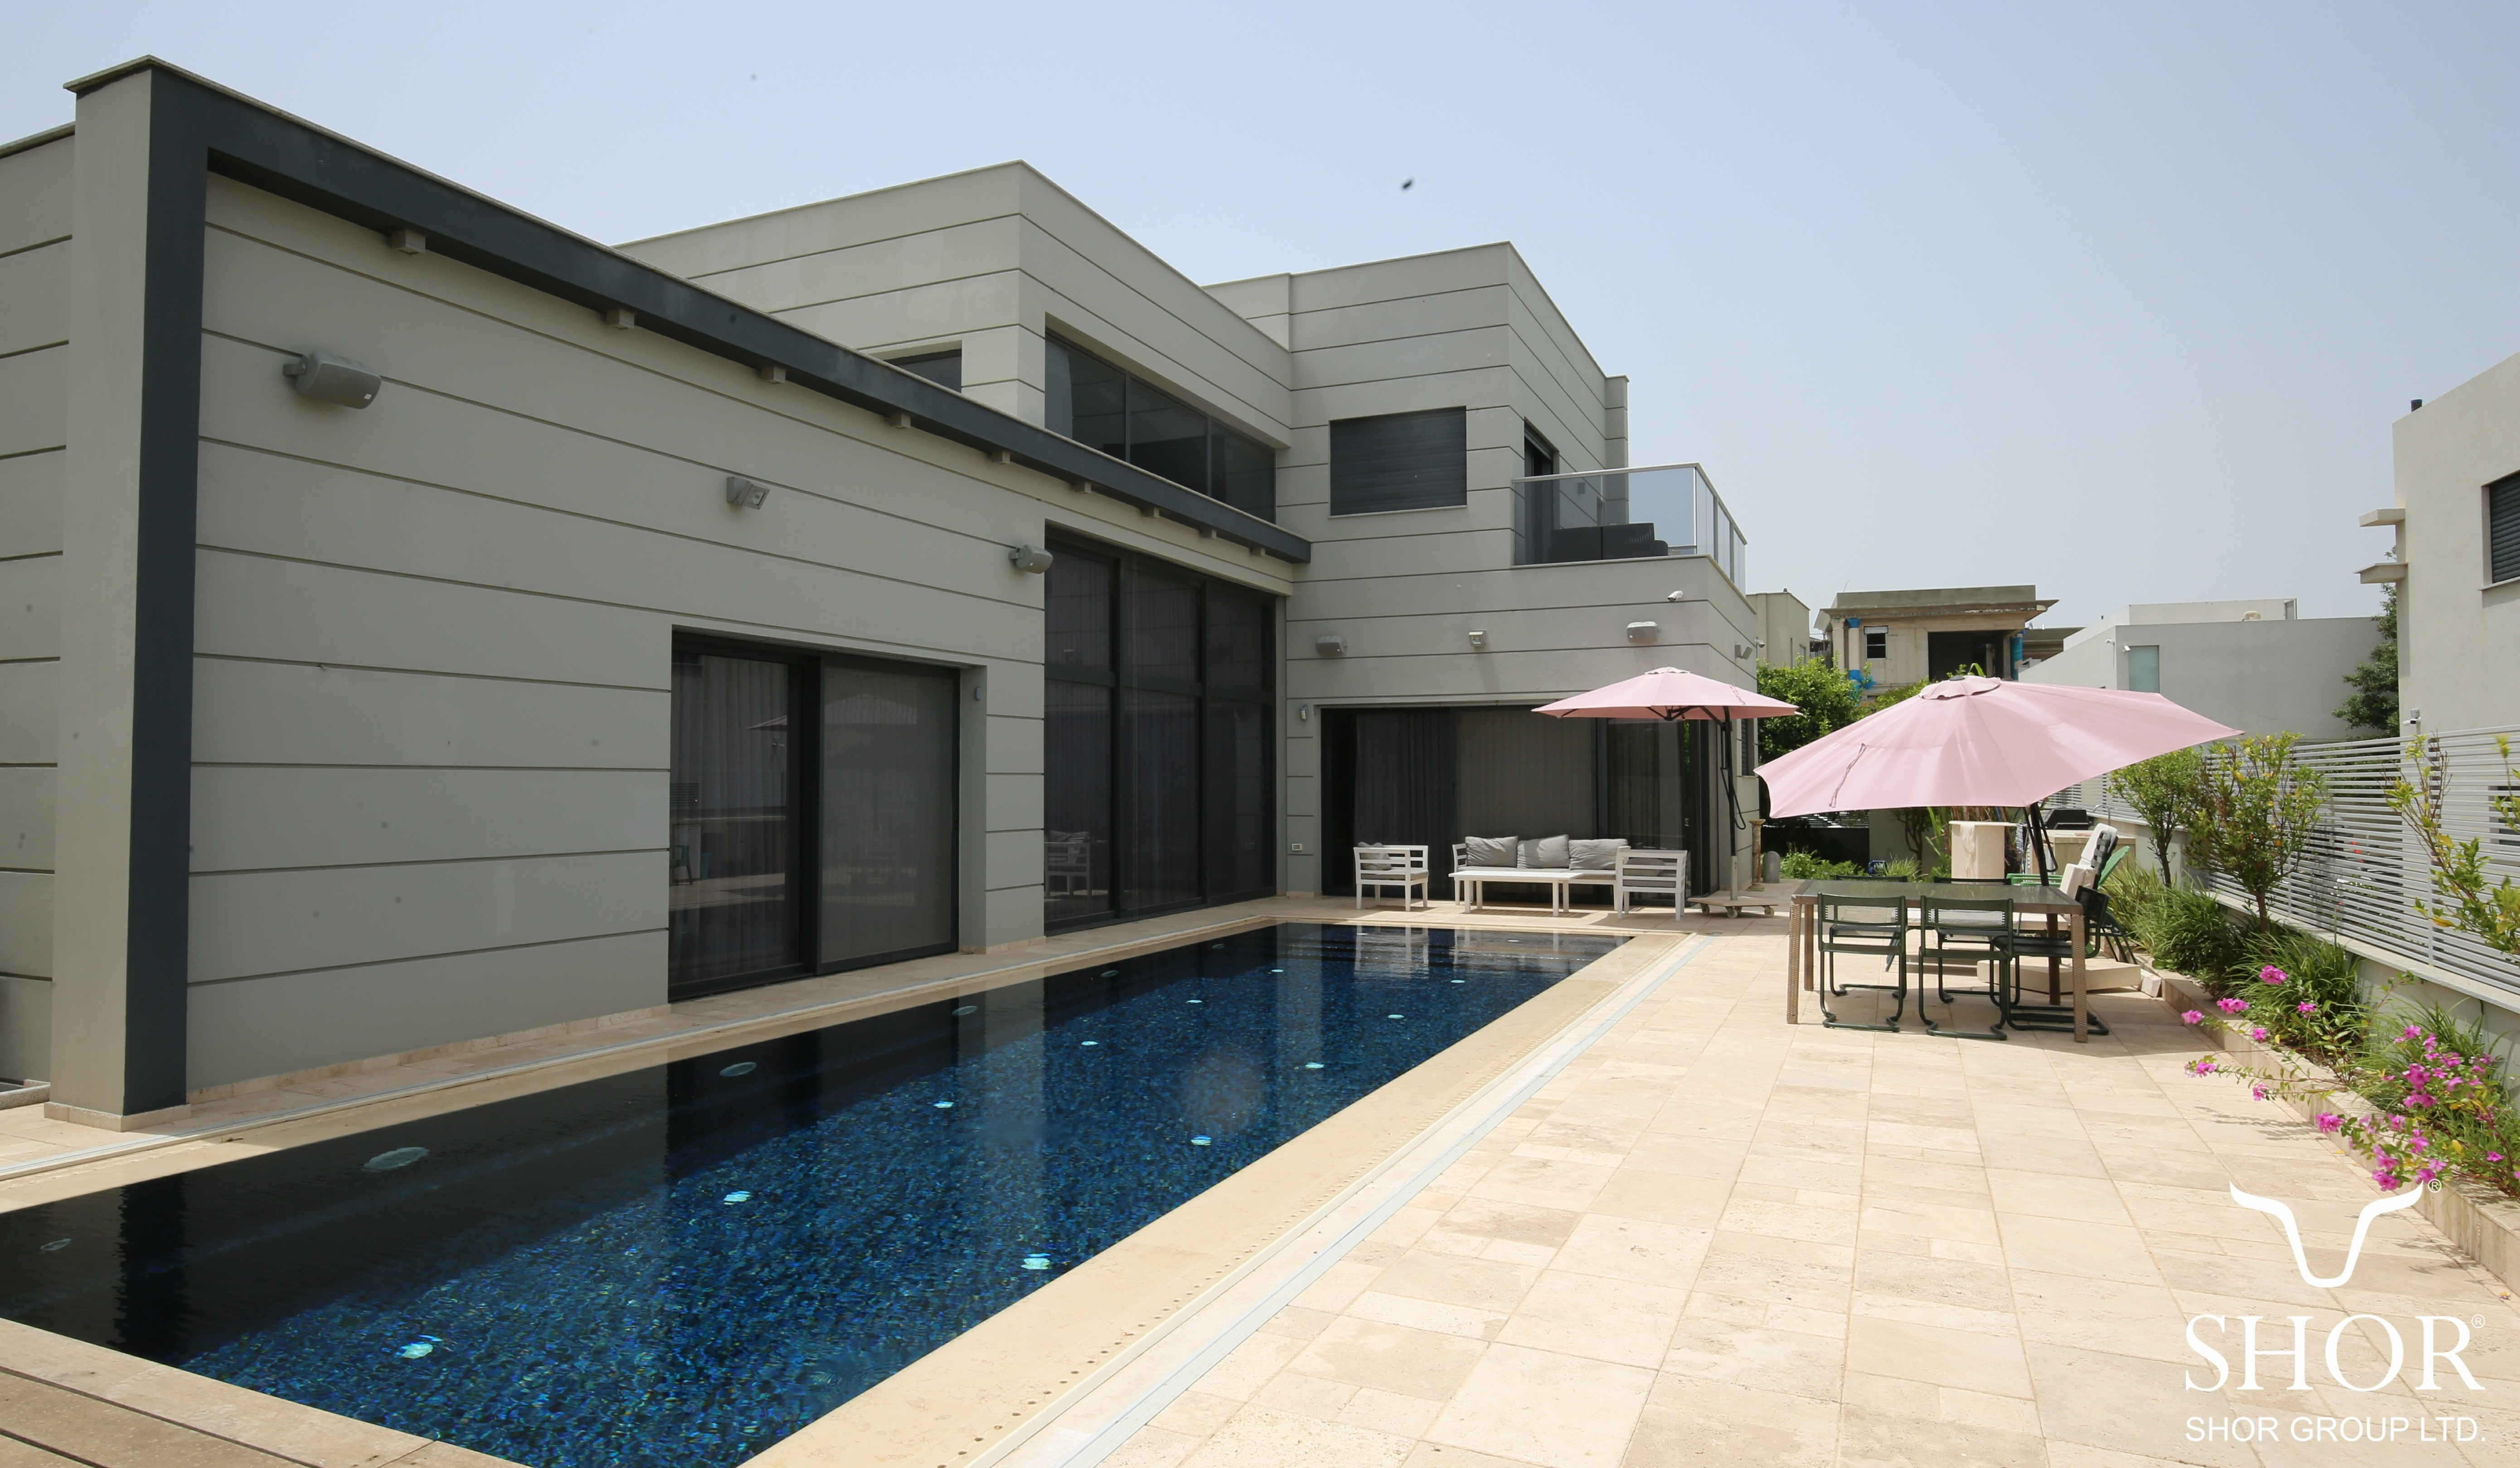 amir-shor-group-do-it-well-shorealty-real-estate-luxury-home-for-sale-caesarea-israel-1